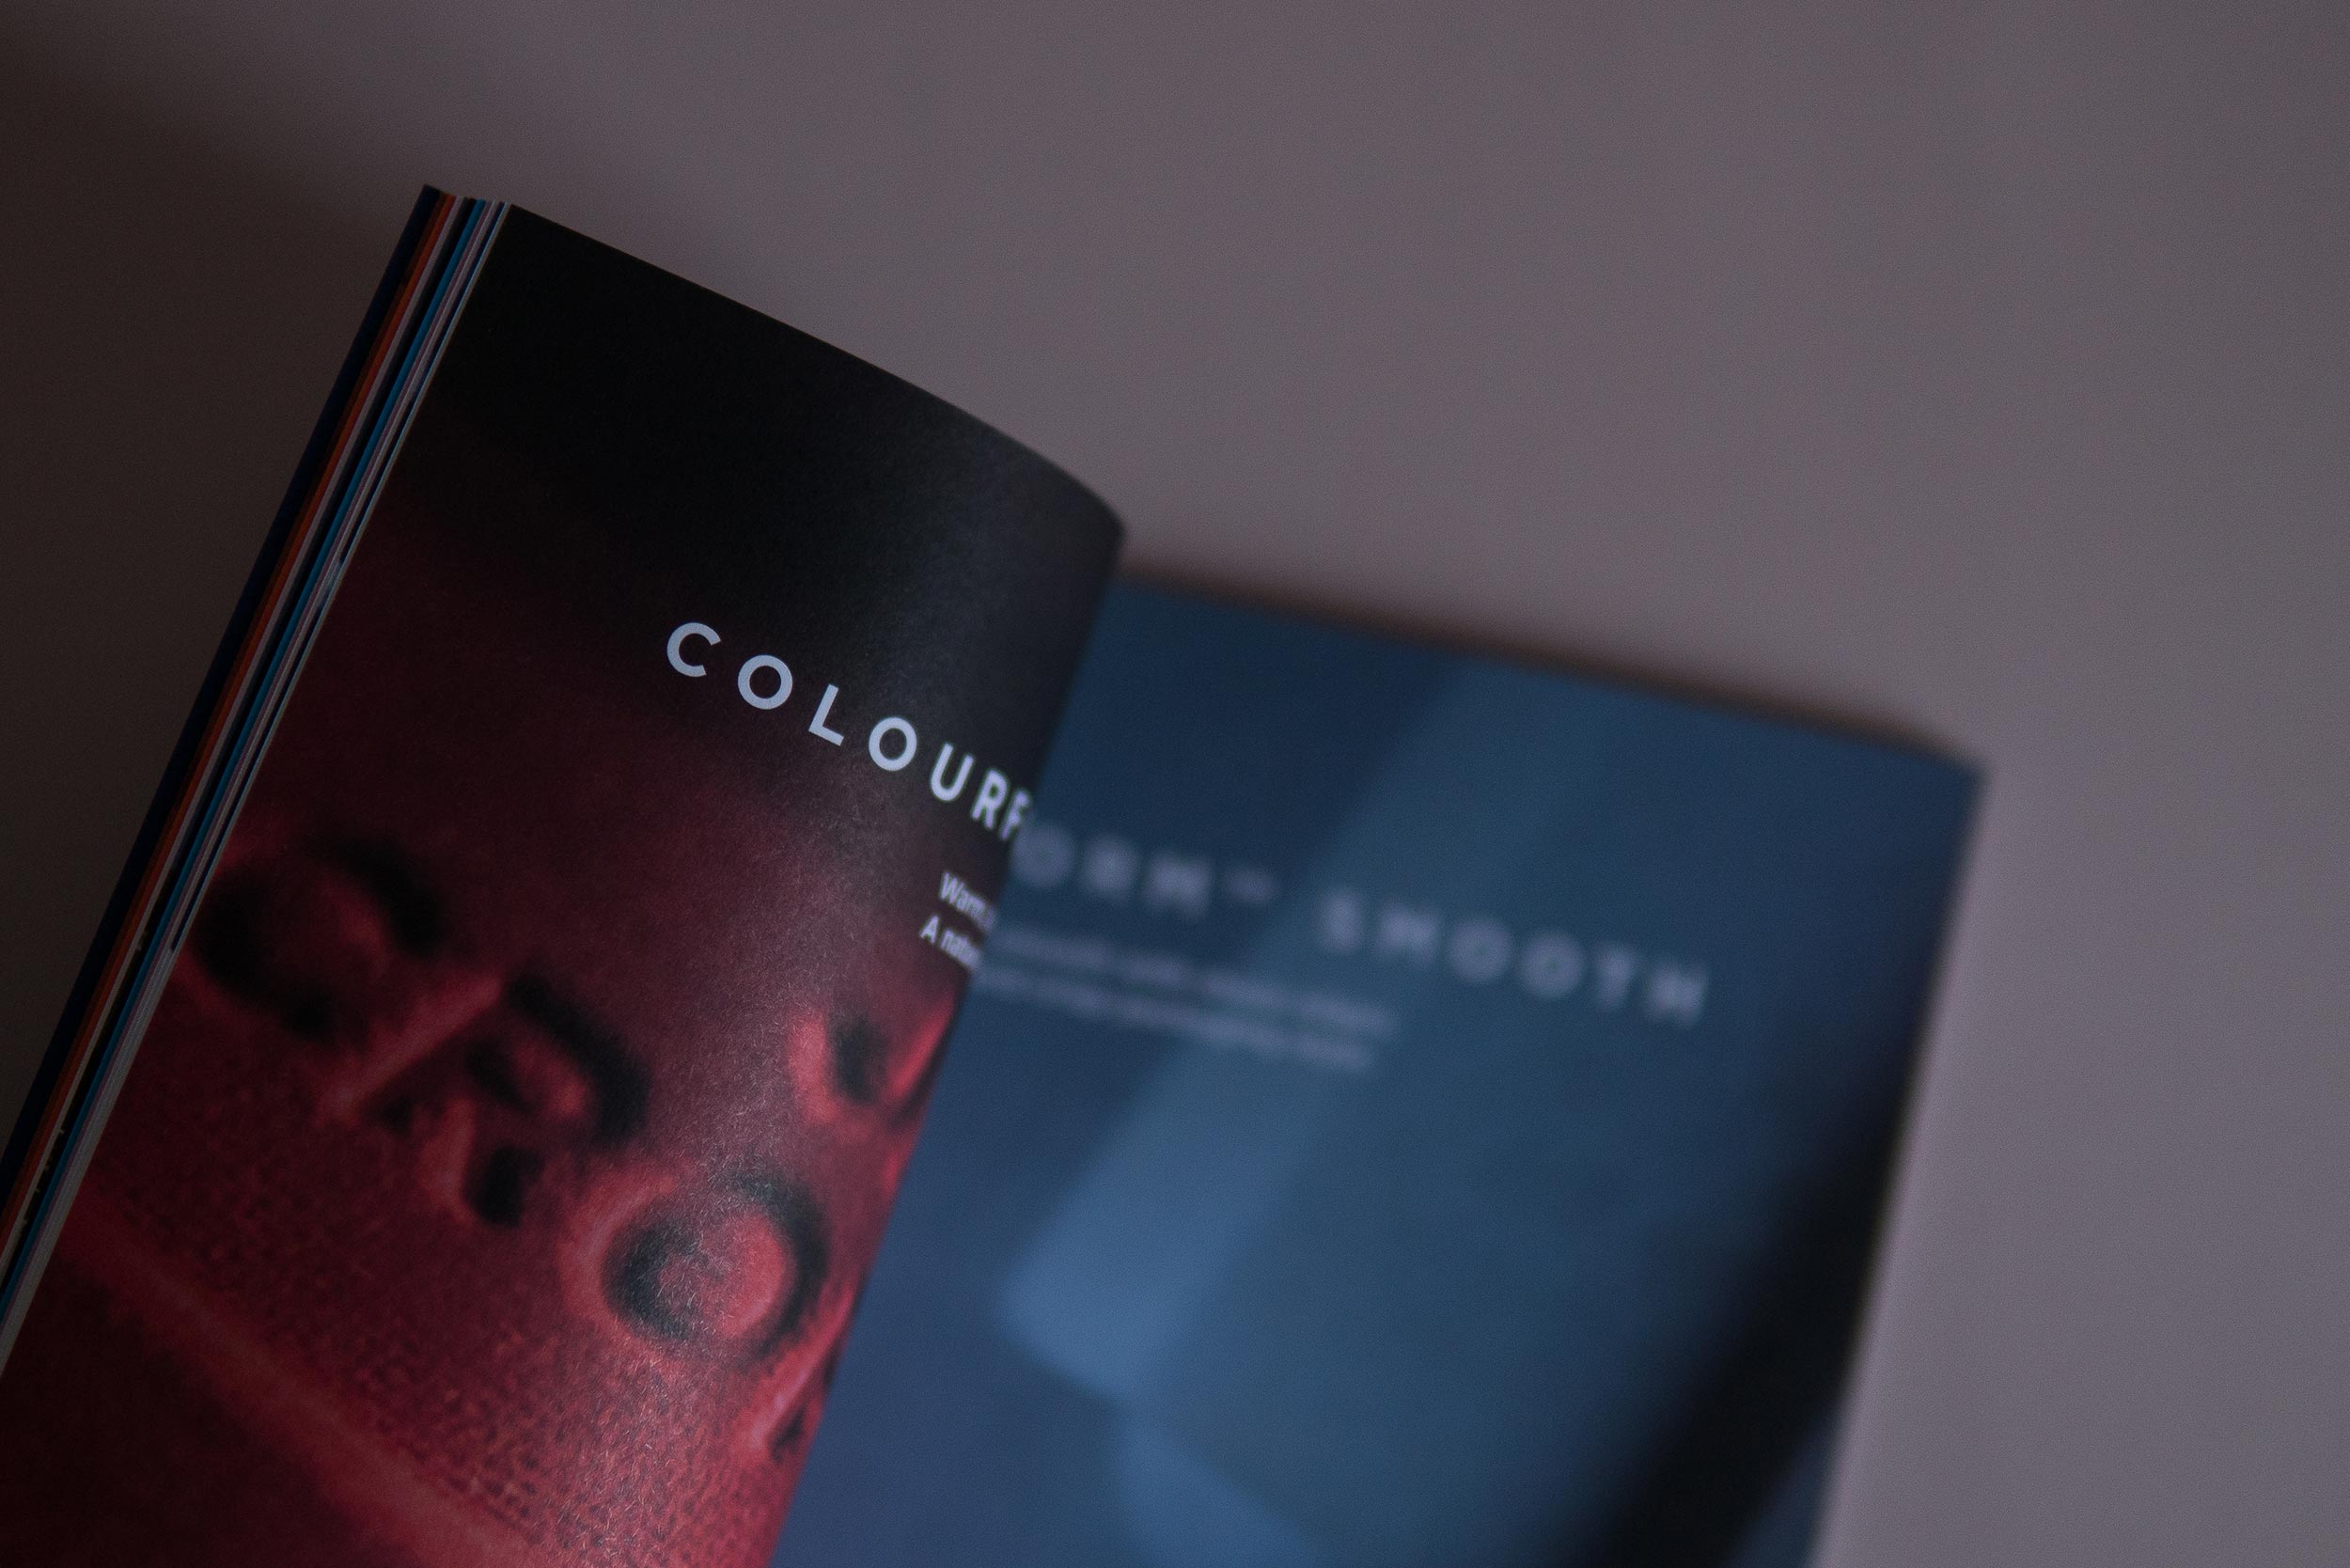 Colourform_Book_300dpi_21